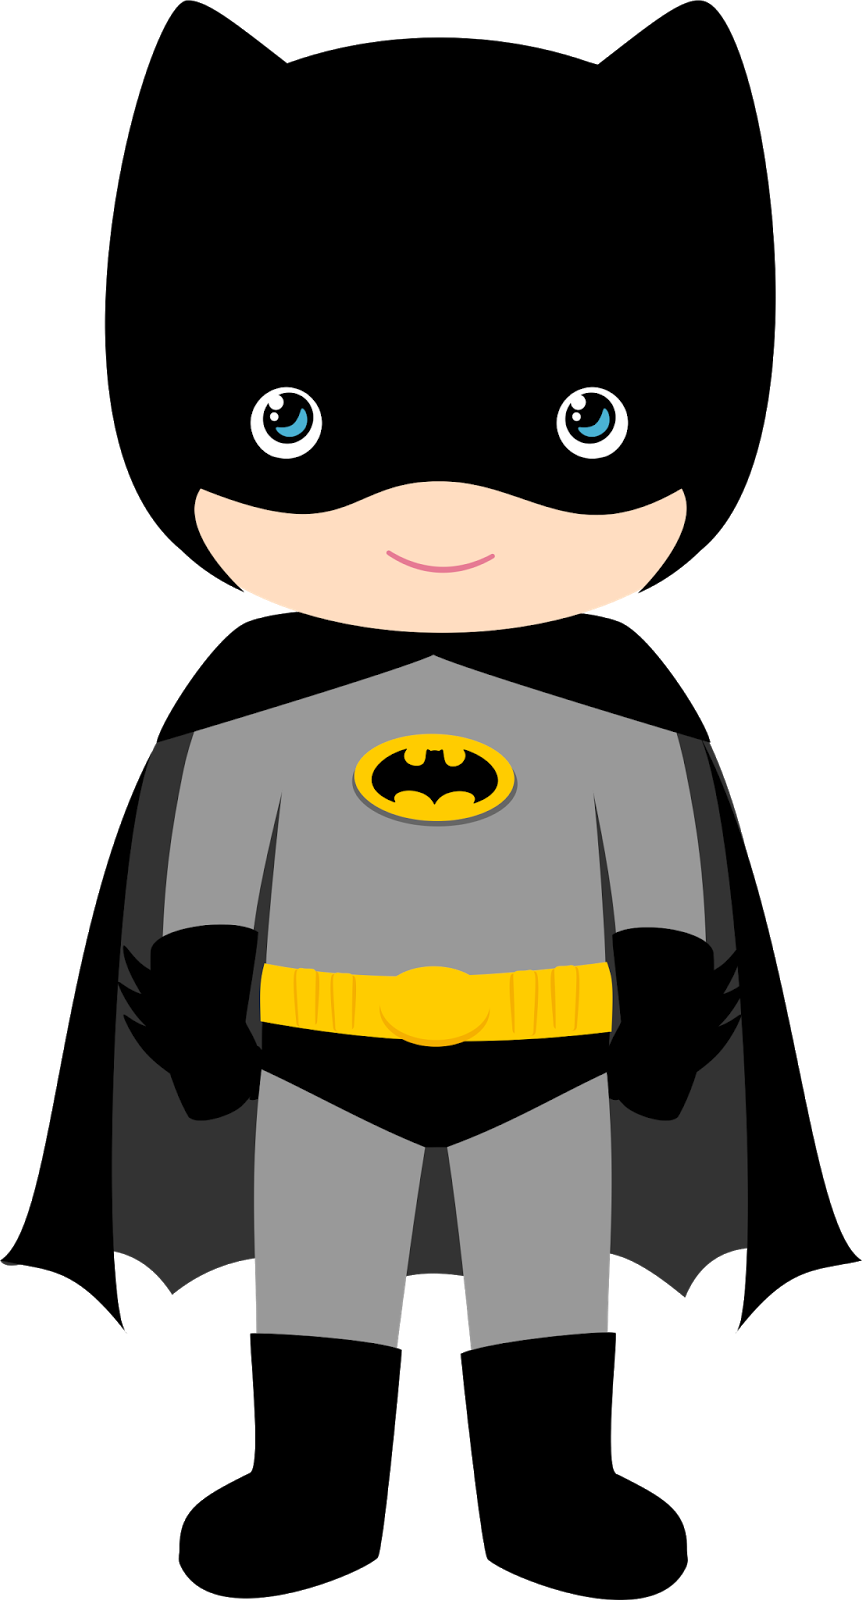 Halloween mask clipart jpg library library Characters of Batman Kids Version Clip Art. | Birthday | Pinterest ... jpg library library